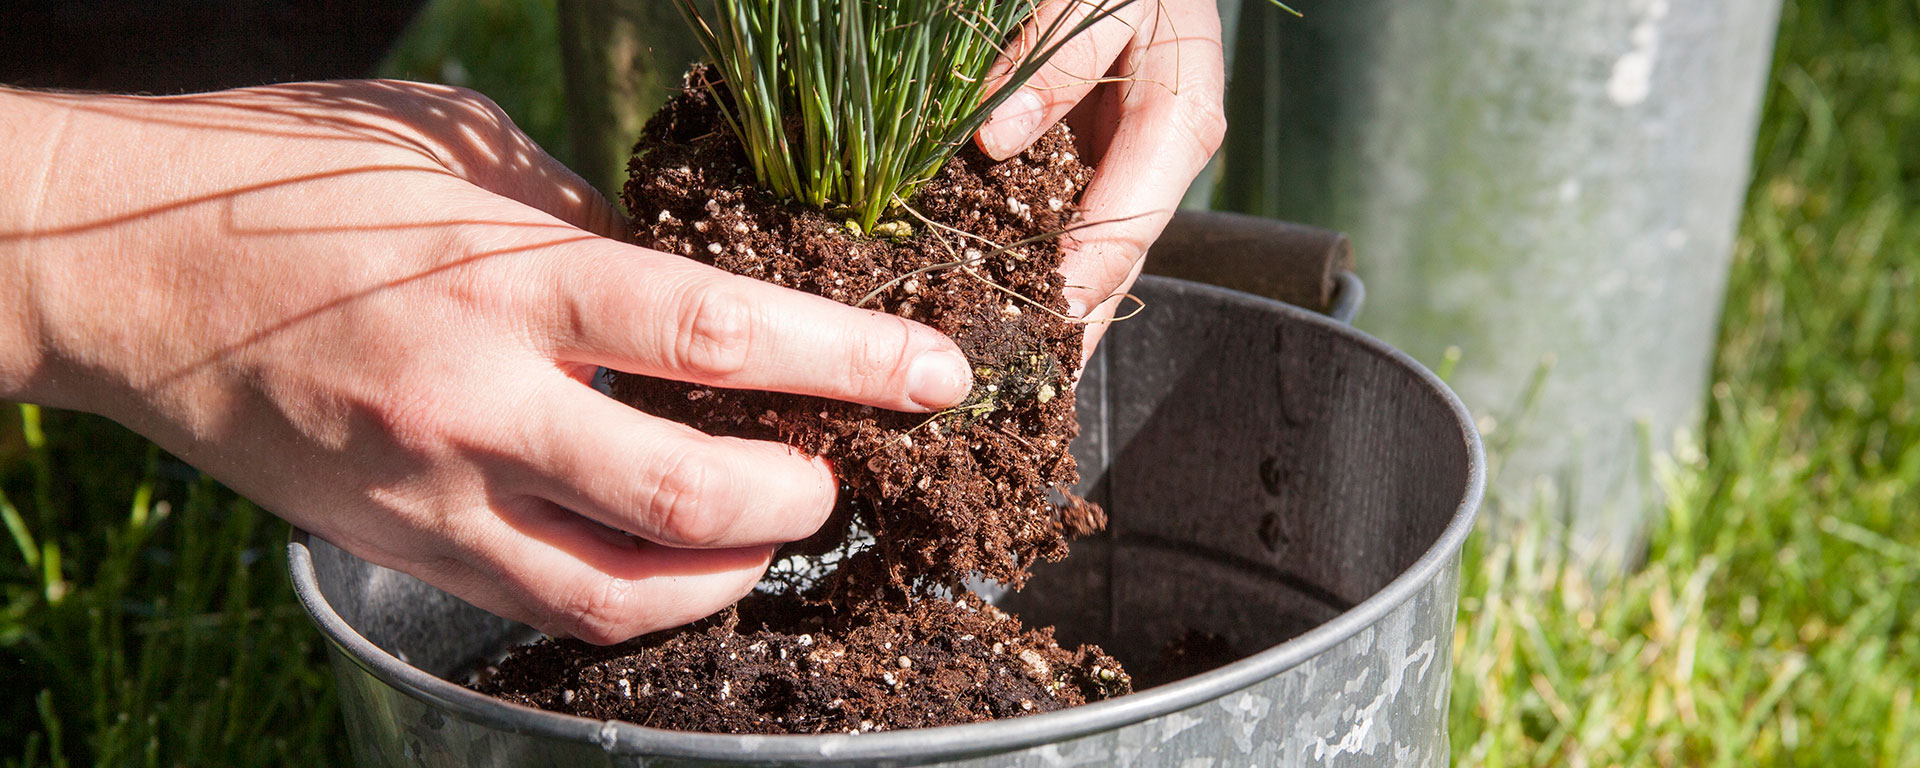 Potting-Plant-Final-Potted-Plant-FEATURED